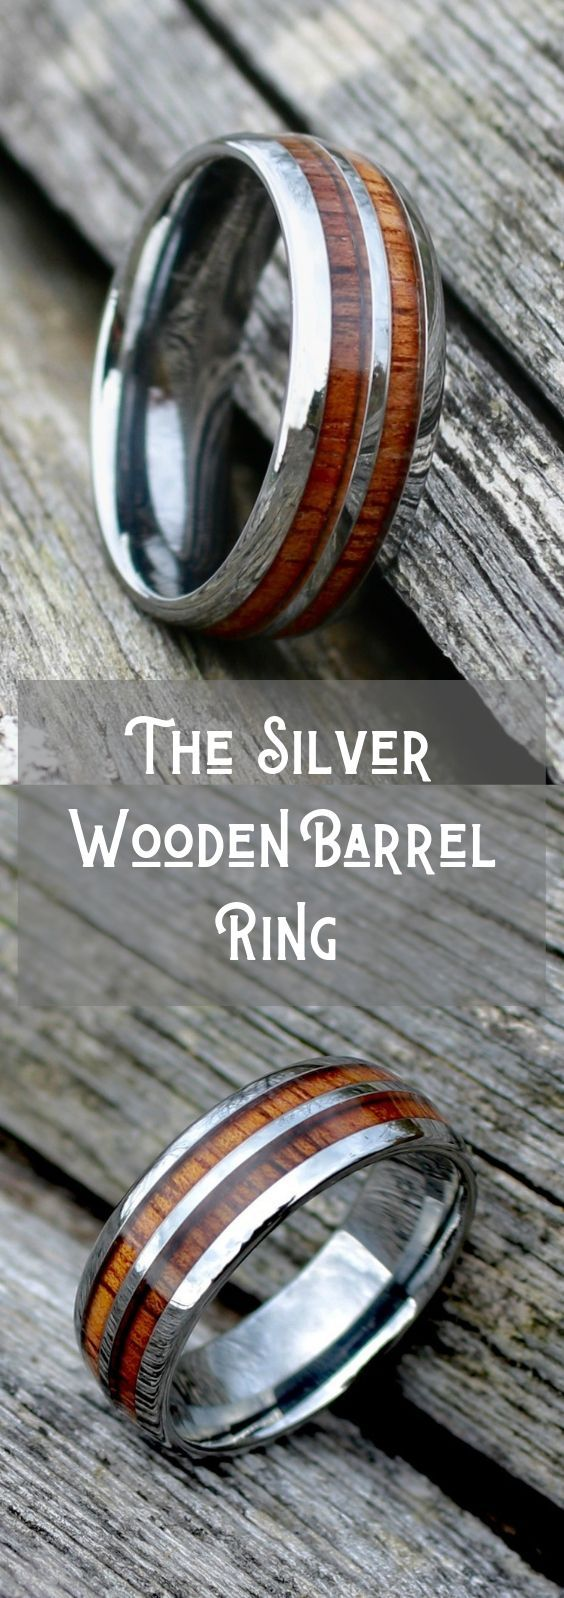 Men's Wooden Barrel Ring. Crafted out of high grade